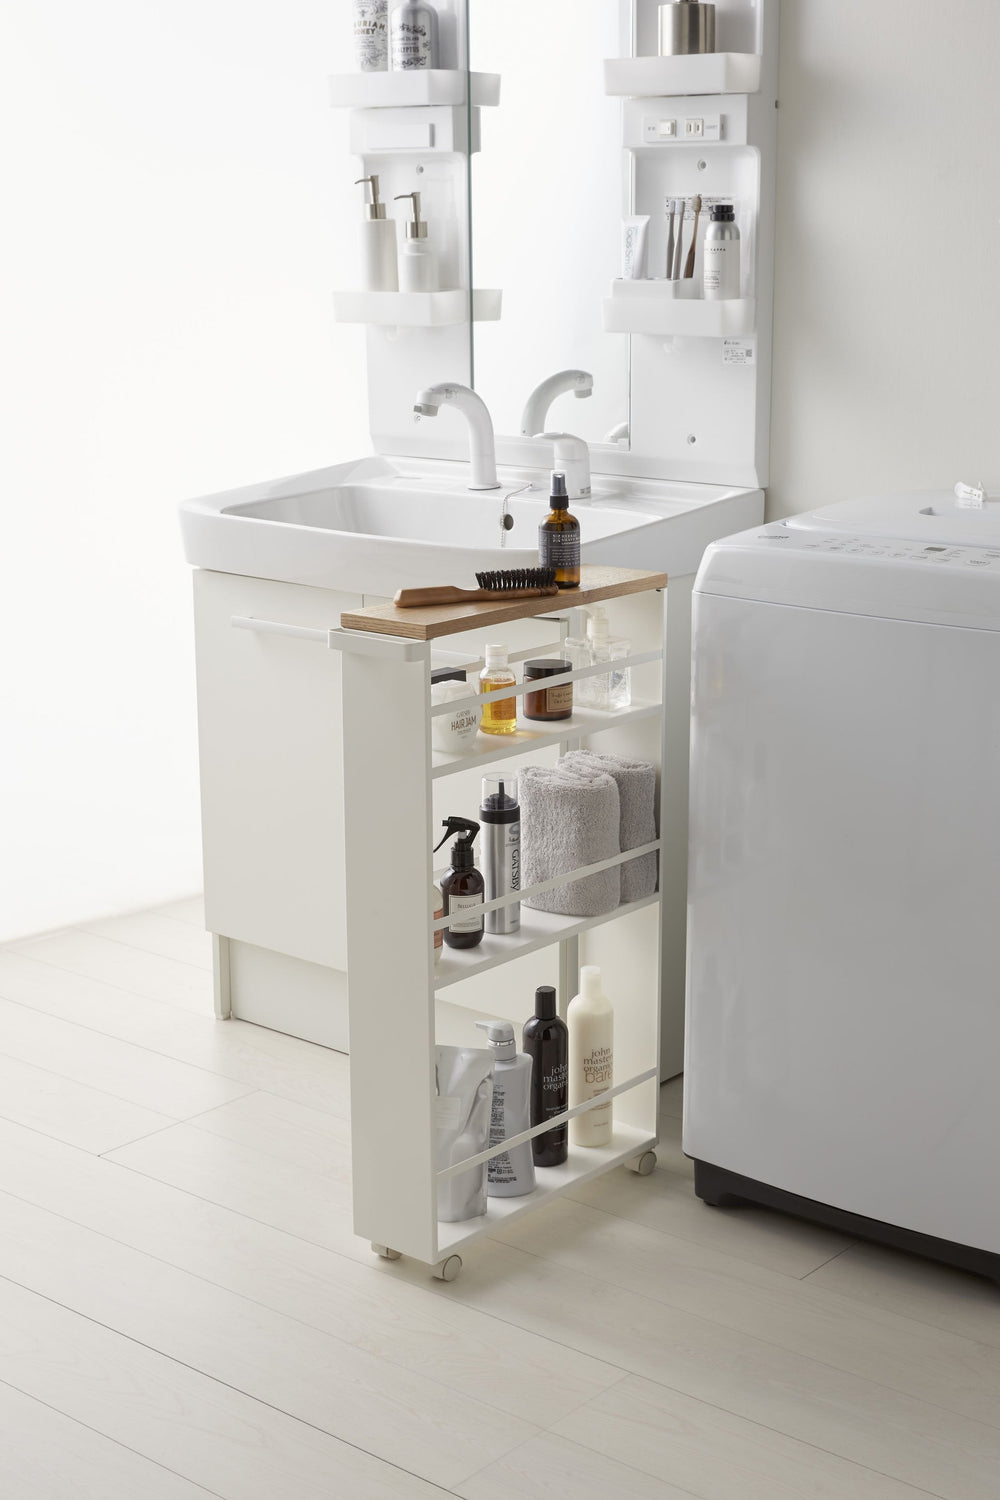 The Yamazaki Rolling Slim Storage Cart, stocked with bathroom items, between a sink vanity and appliance in a modern bathroom